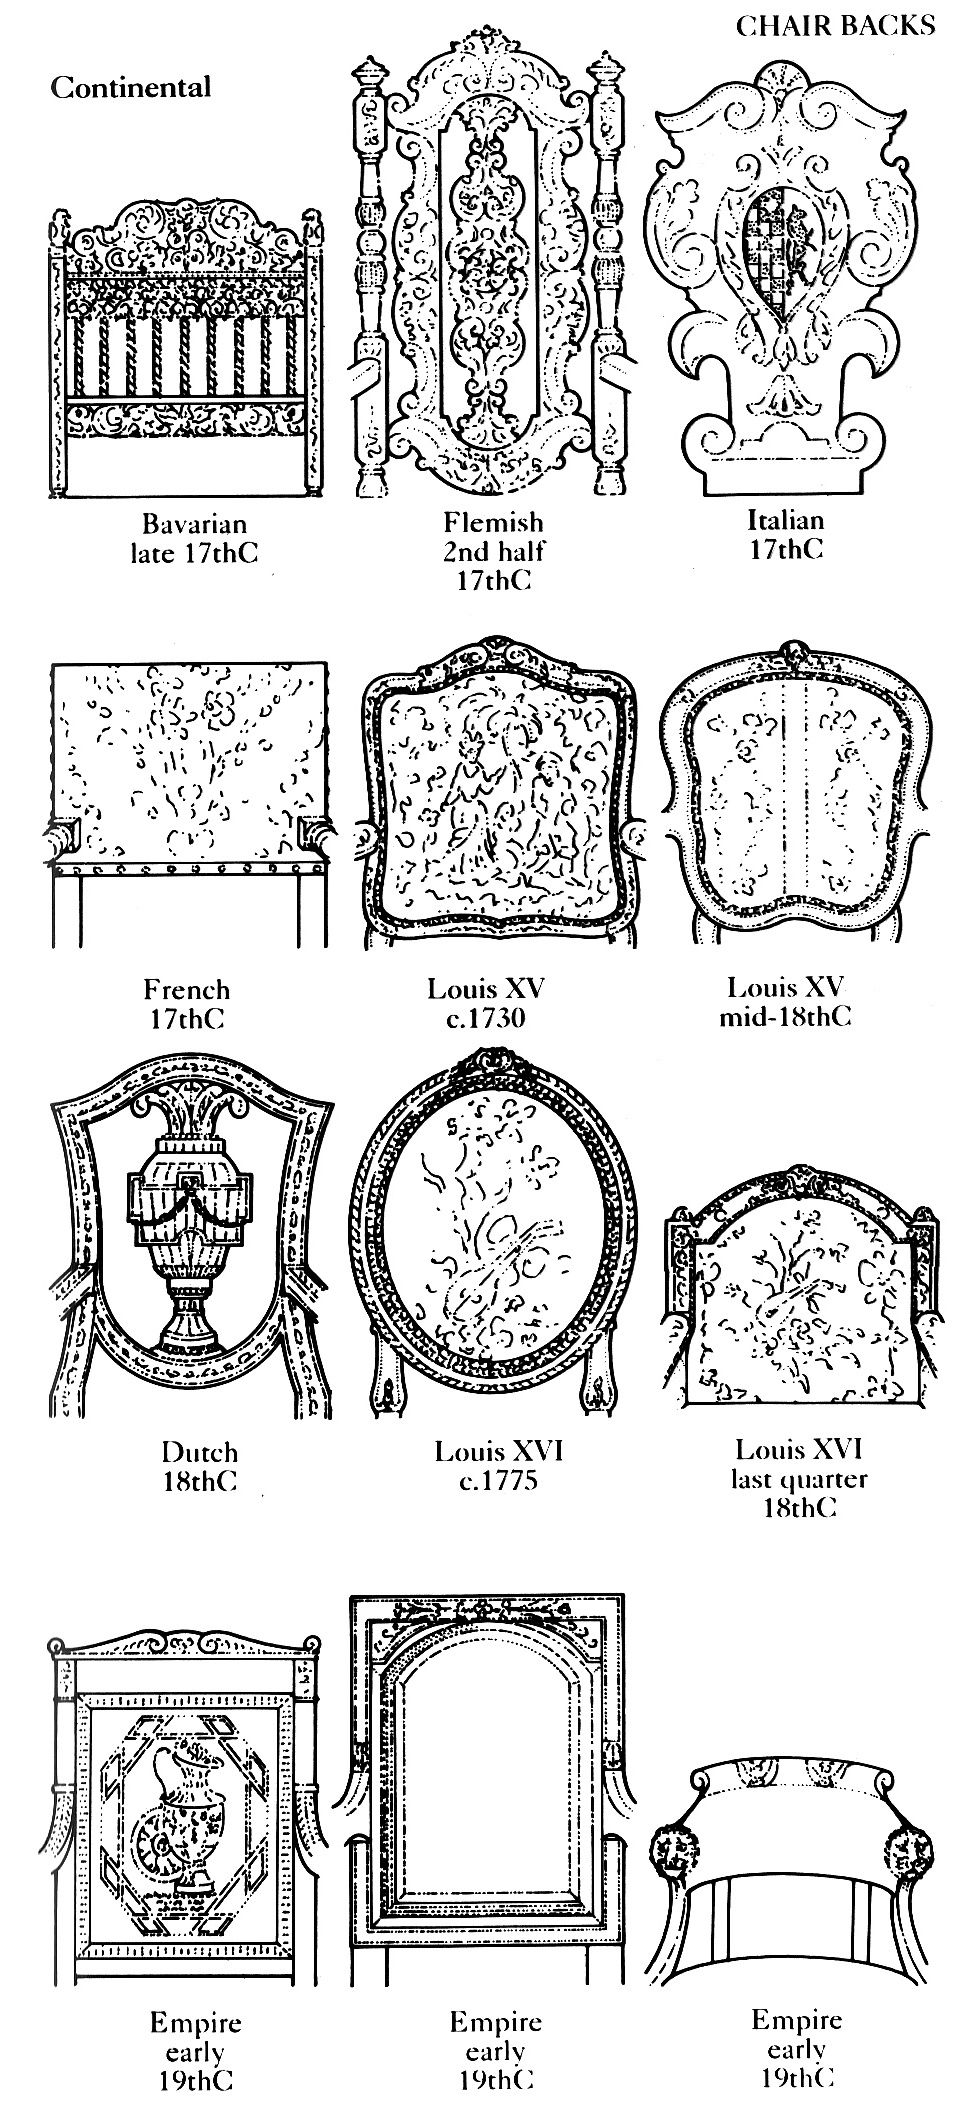 Bon Diagram Of Continental Chair Backs Late 17th Century To Early 19th Century.